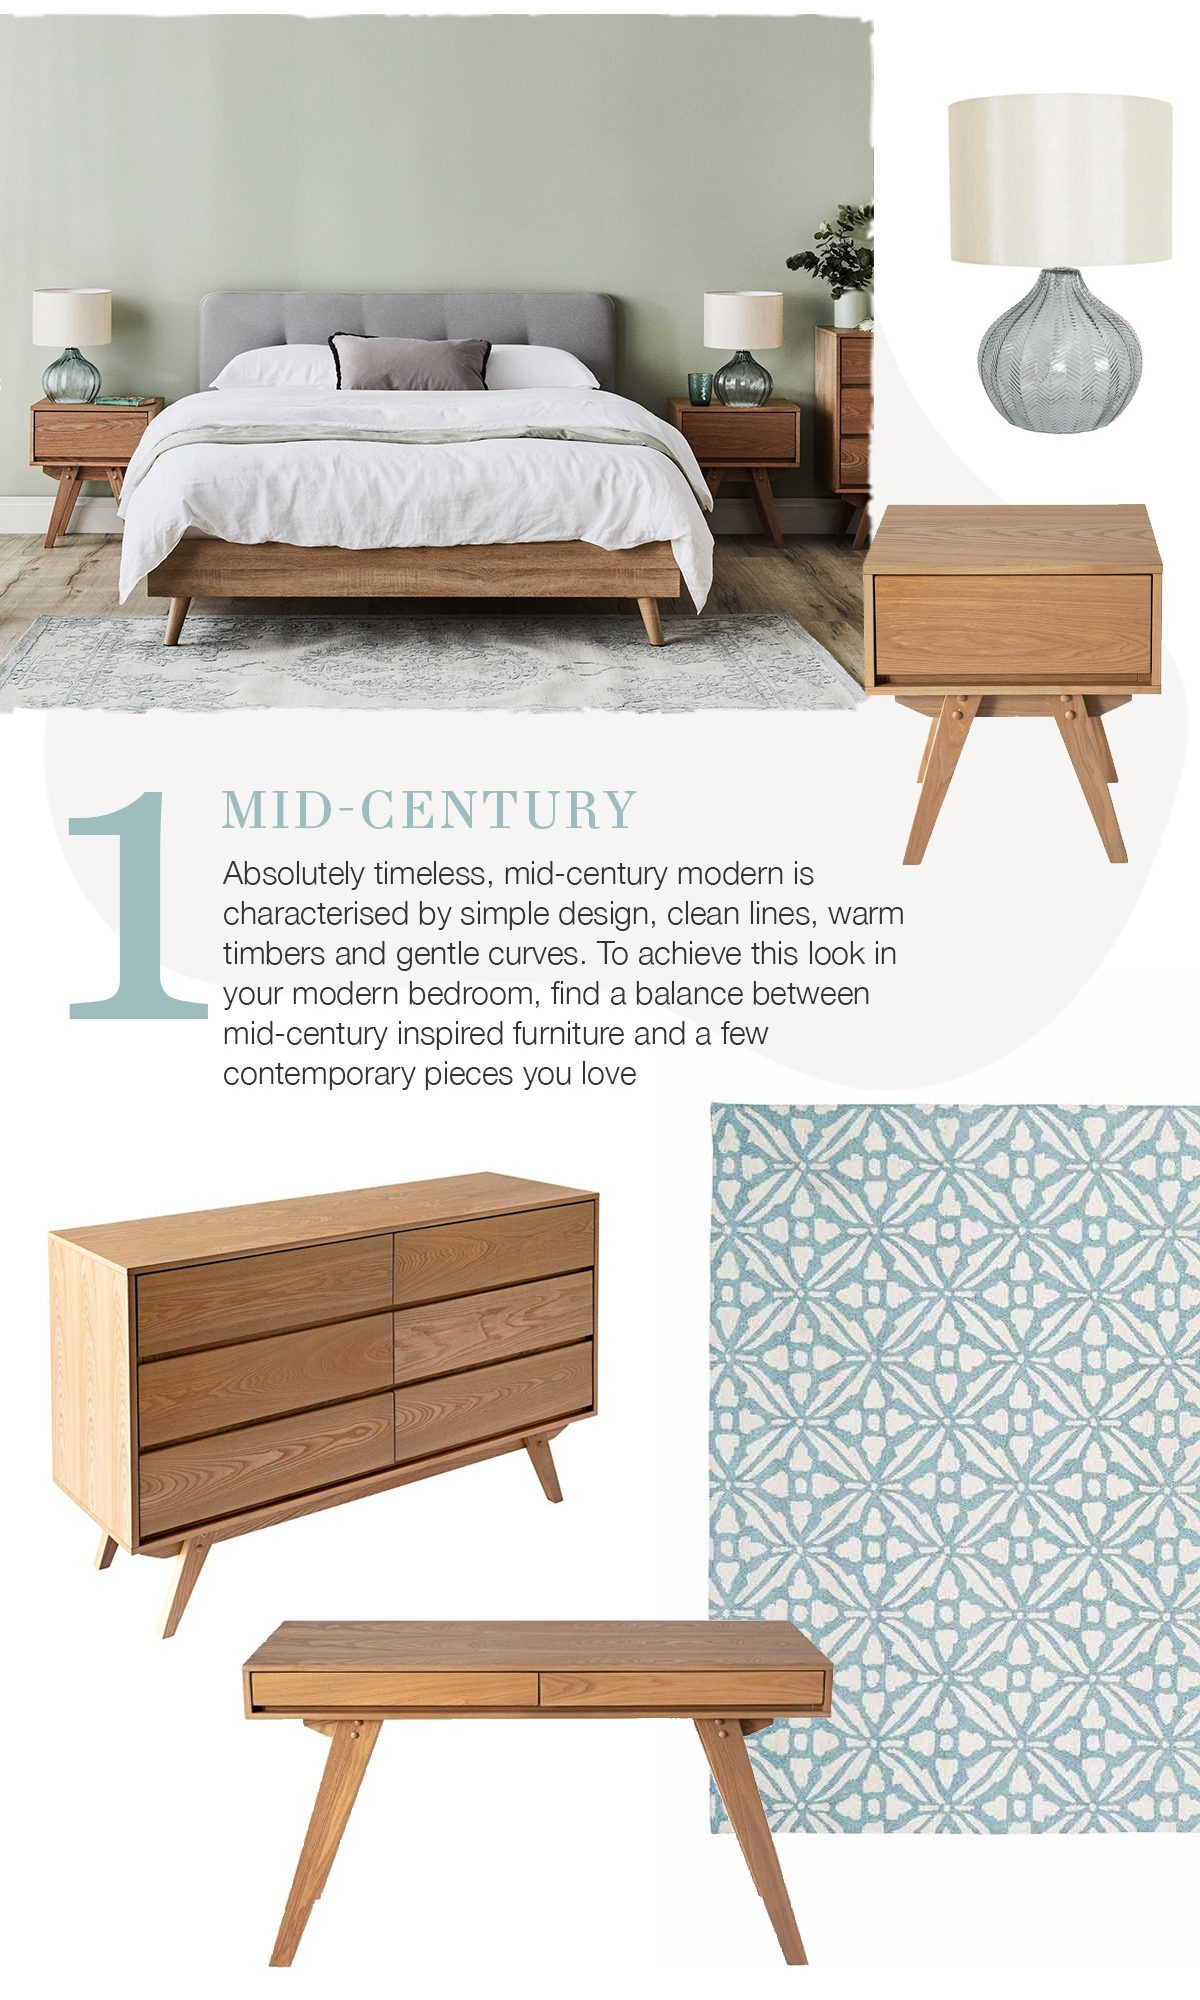 3 Dreamy Decorating Ideas for Your Bedroom - mid-century